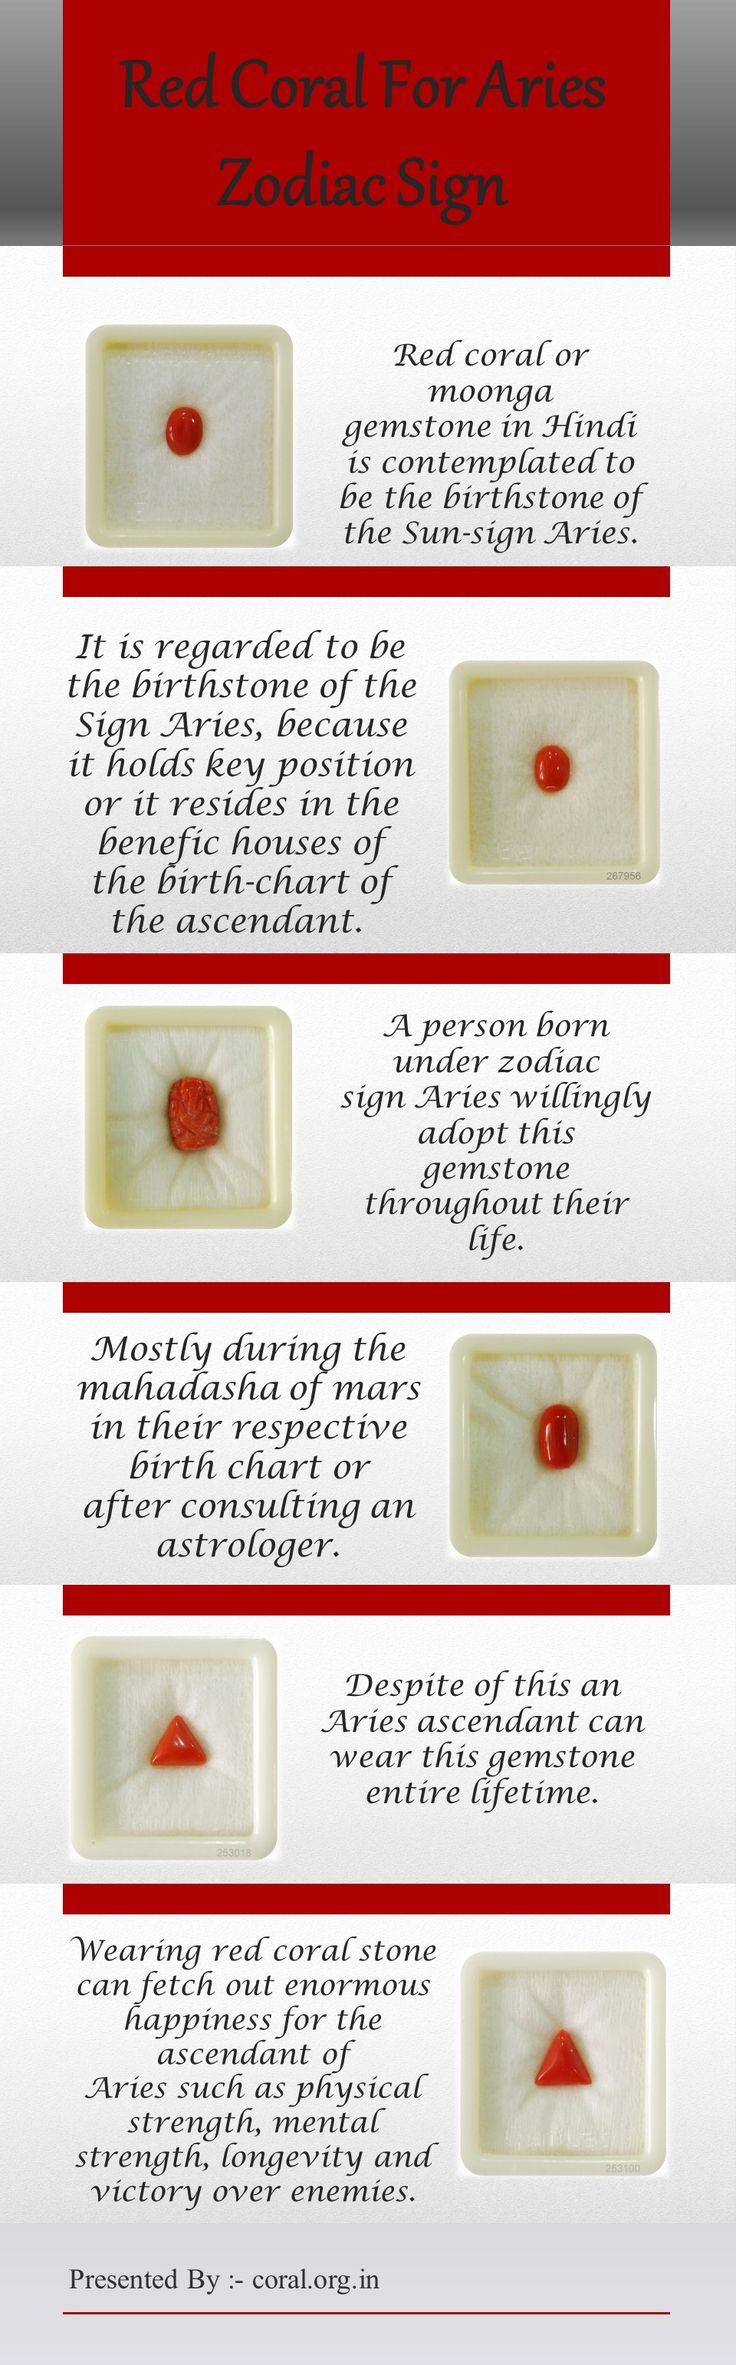 Red coral or moonga gemstone in Hindi is contemplated to be the birthstone of the Sun-sign Aries. It is regarded to be the birthstone of the Sign Aries, because it holds key position or it resides in the benefic houses of the birth-chart of the ascendant. A person born under zodiac sign Aries willingly adopt this gemstone throughout their life.